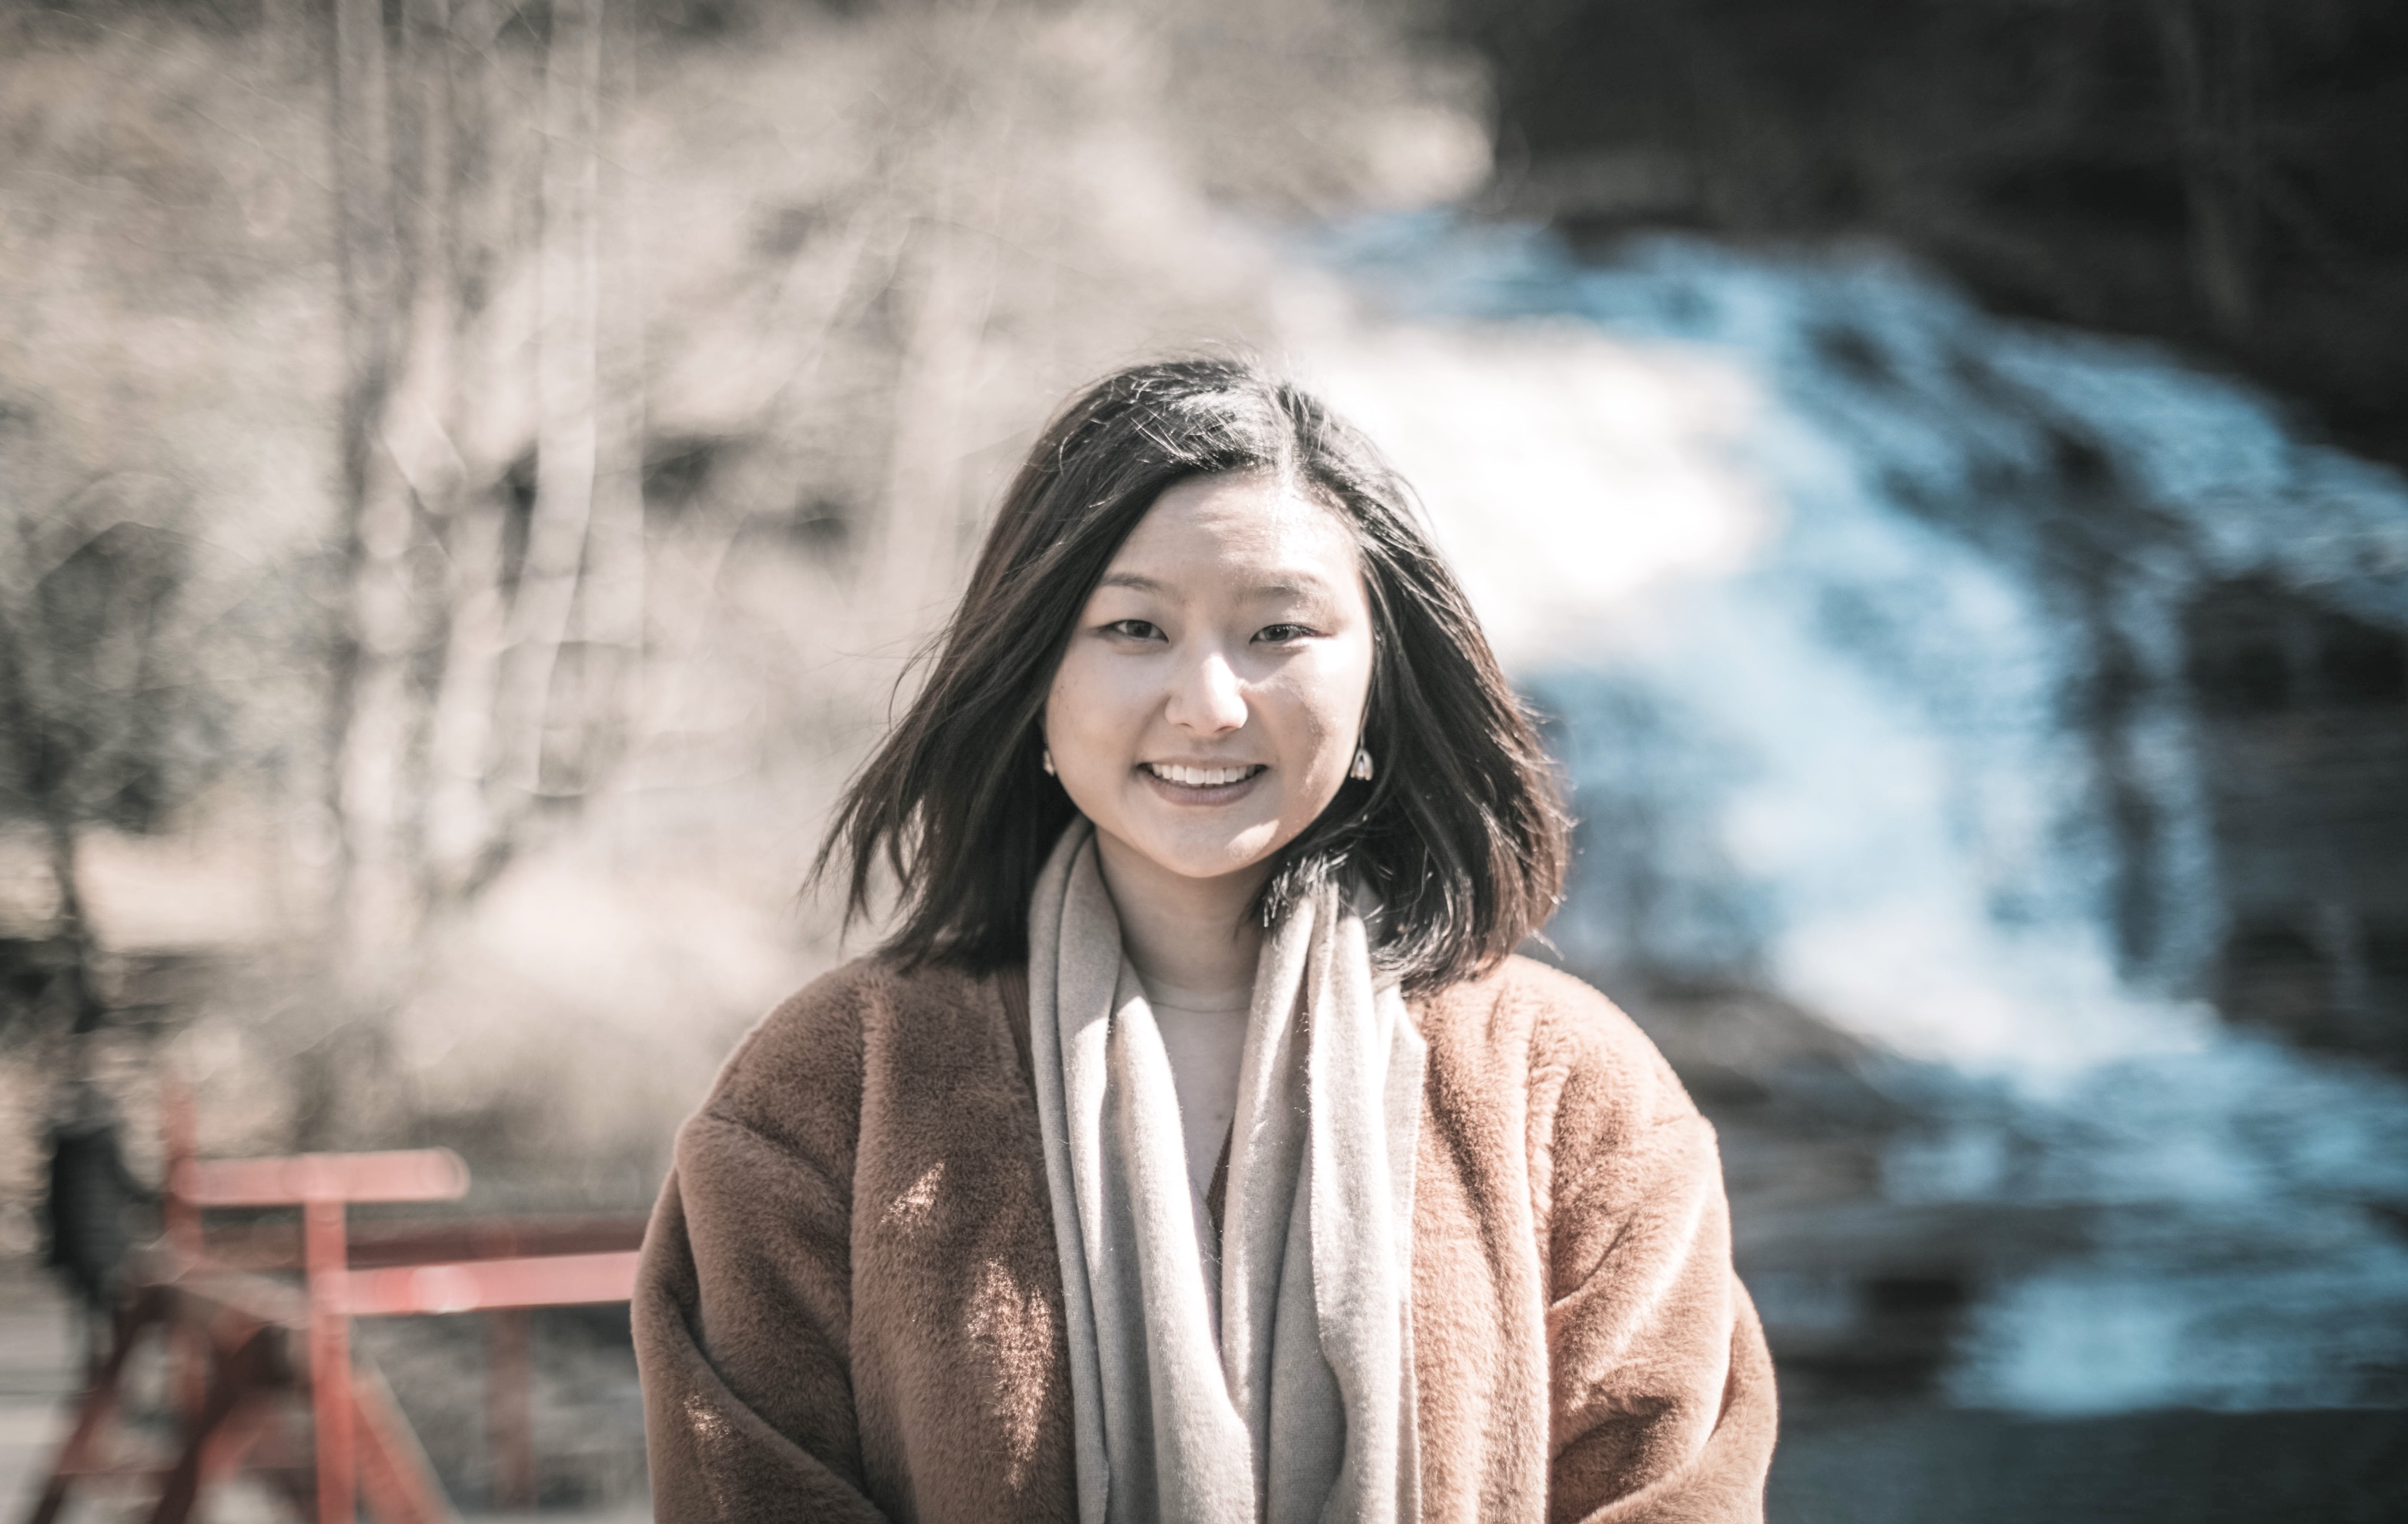 Hannah Cho, an Asian woman, is smiling. She is standing outside, in front of a tree and a hill of snow that is blurred and in the background.